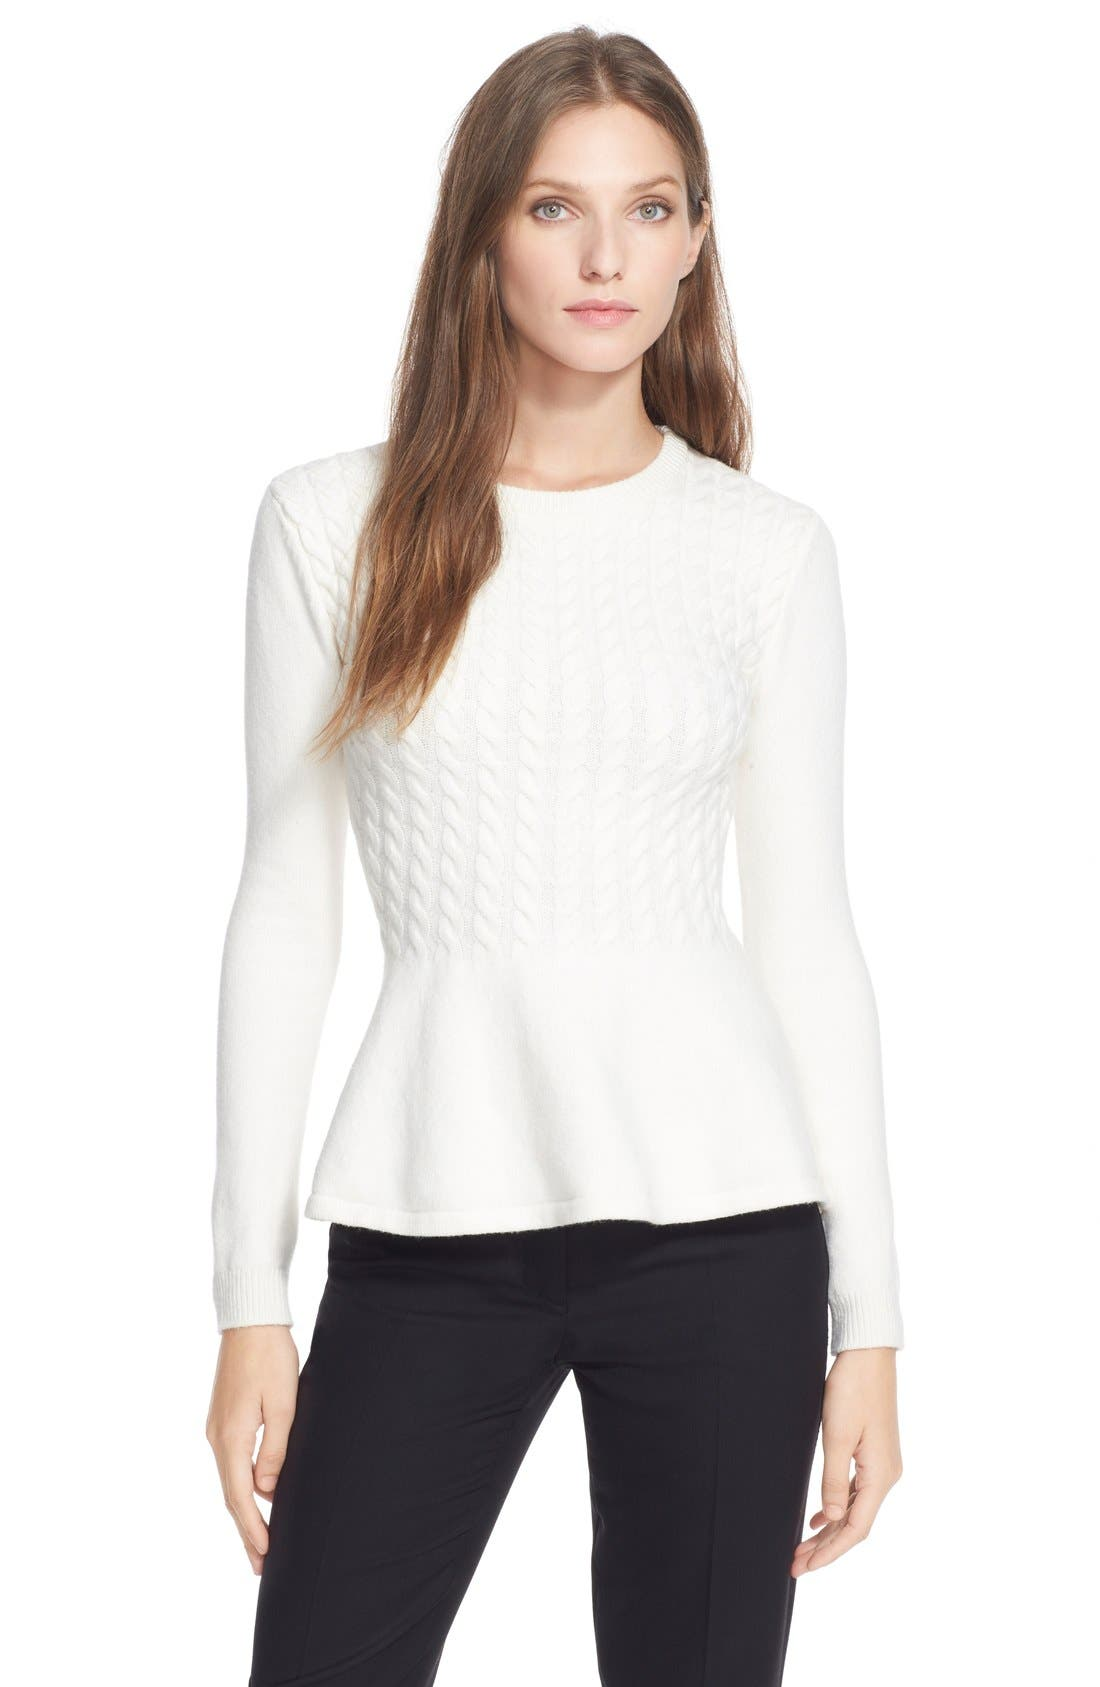 Alternate Image 1 Selected - Ted Baker London 'Mereda' Cable Knit PeplumSweater